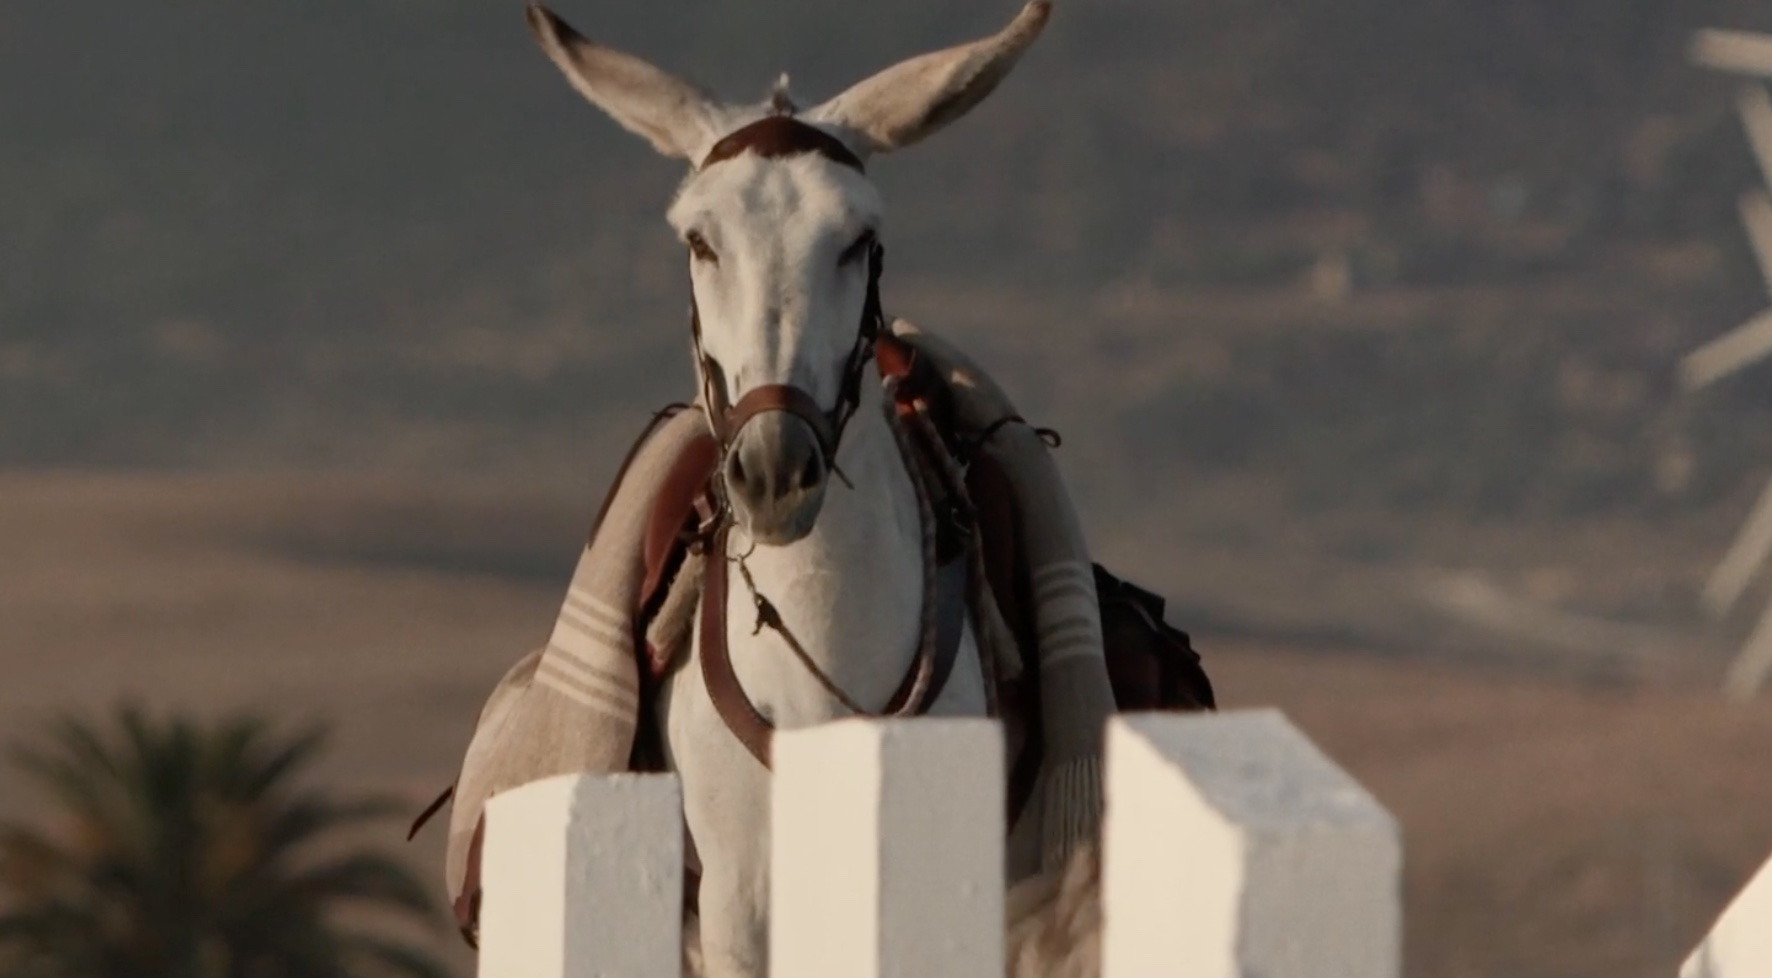 Gorrión, the star of Chico Pereria's Donkeyote (2017)